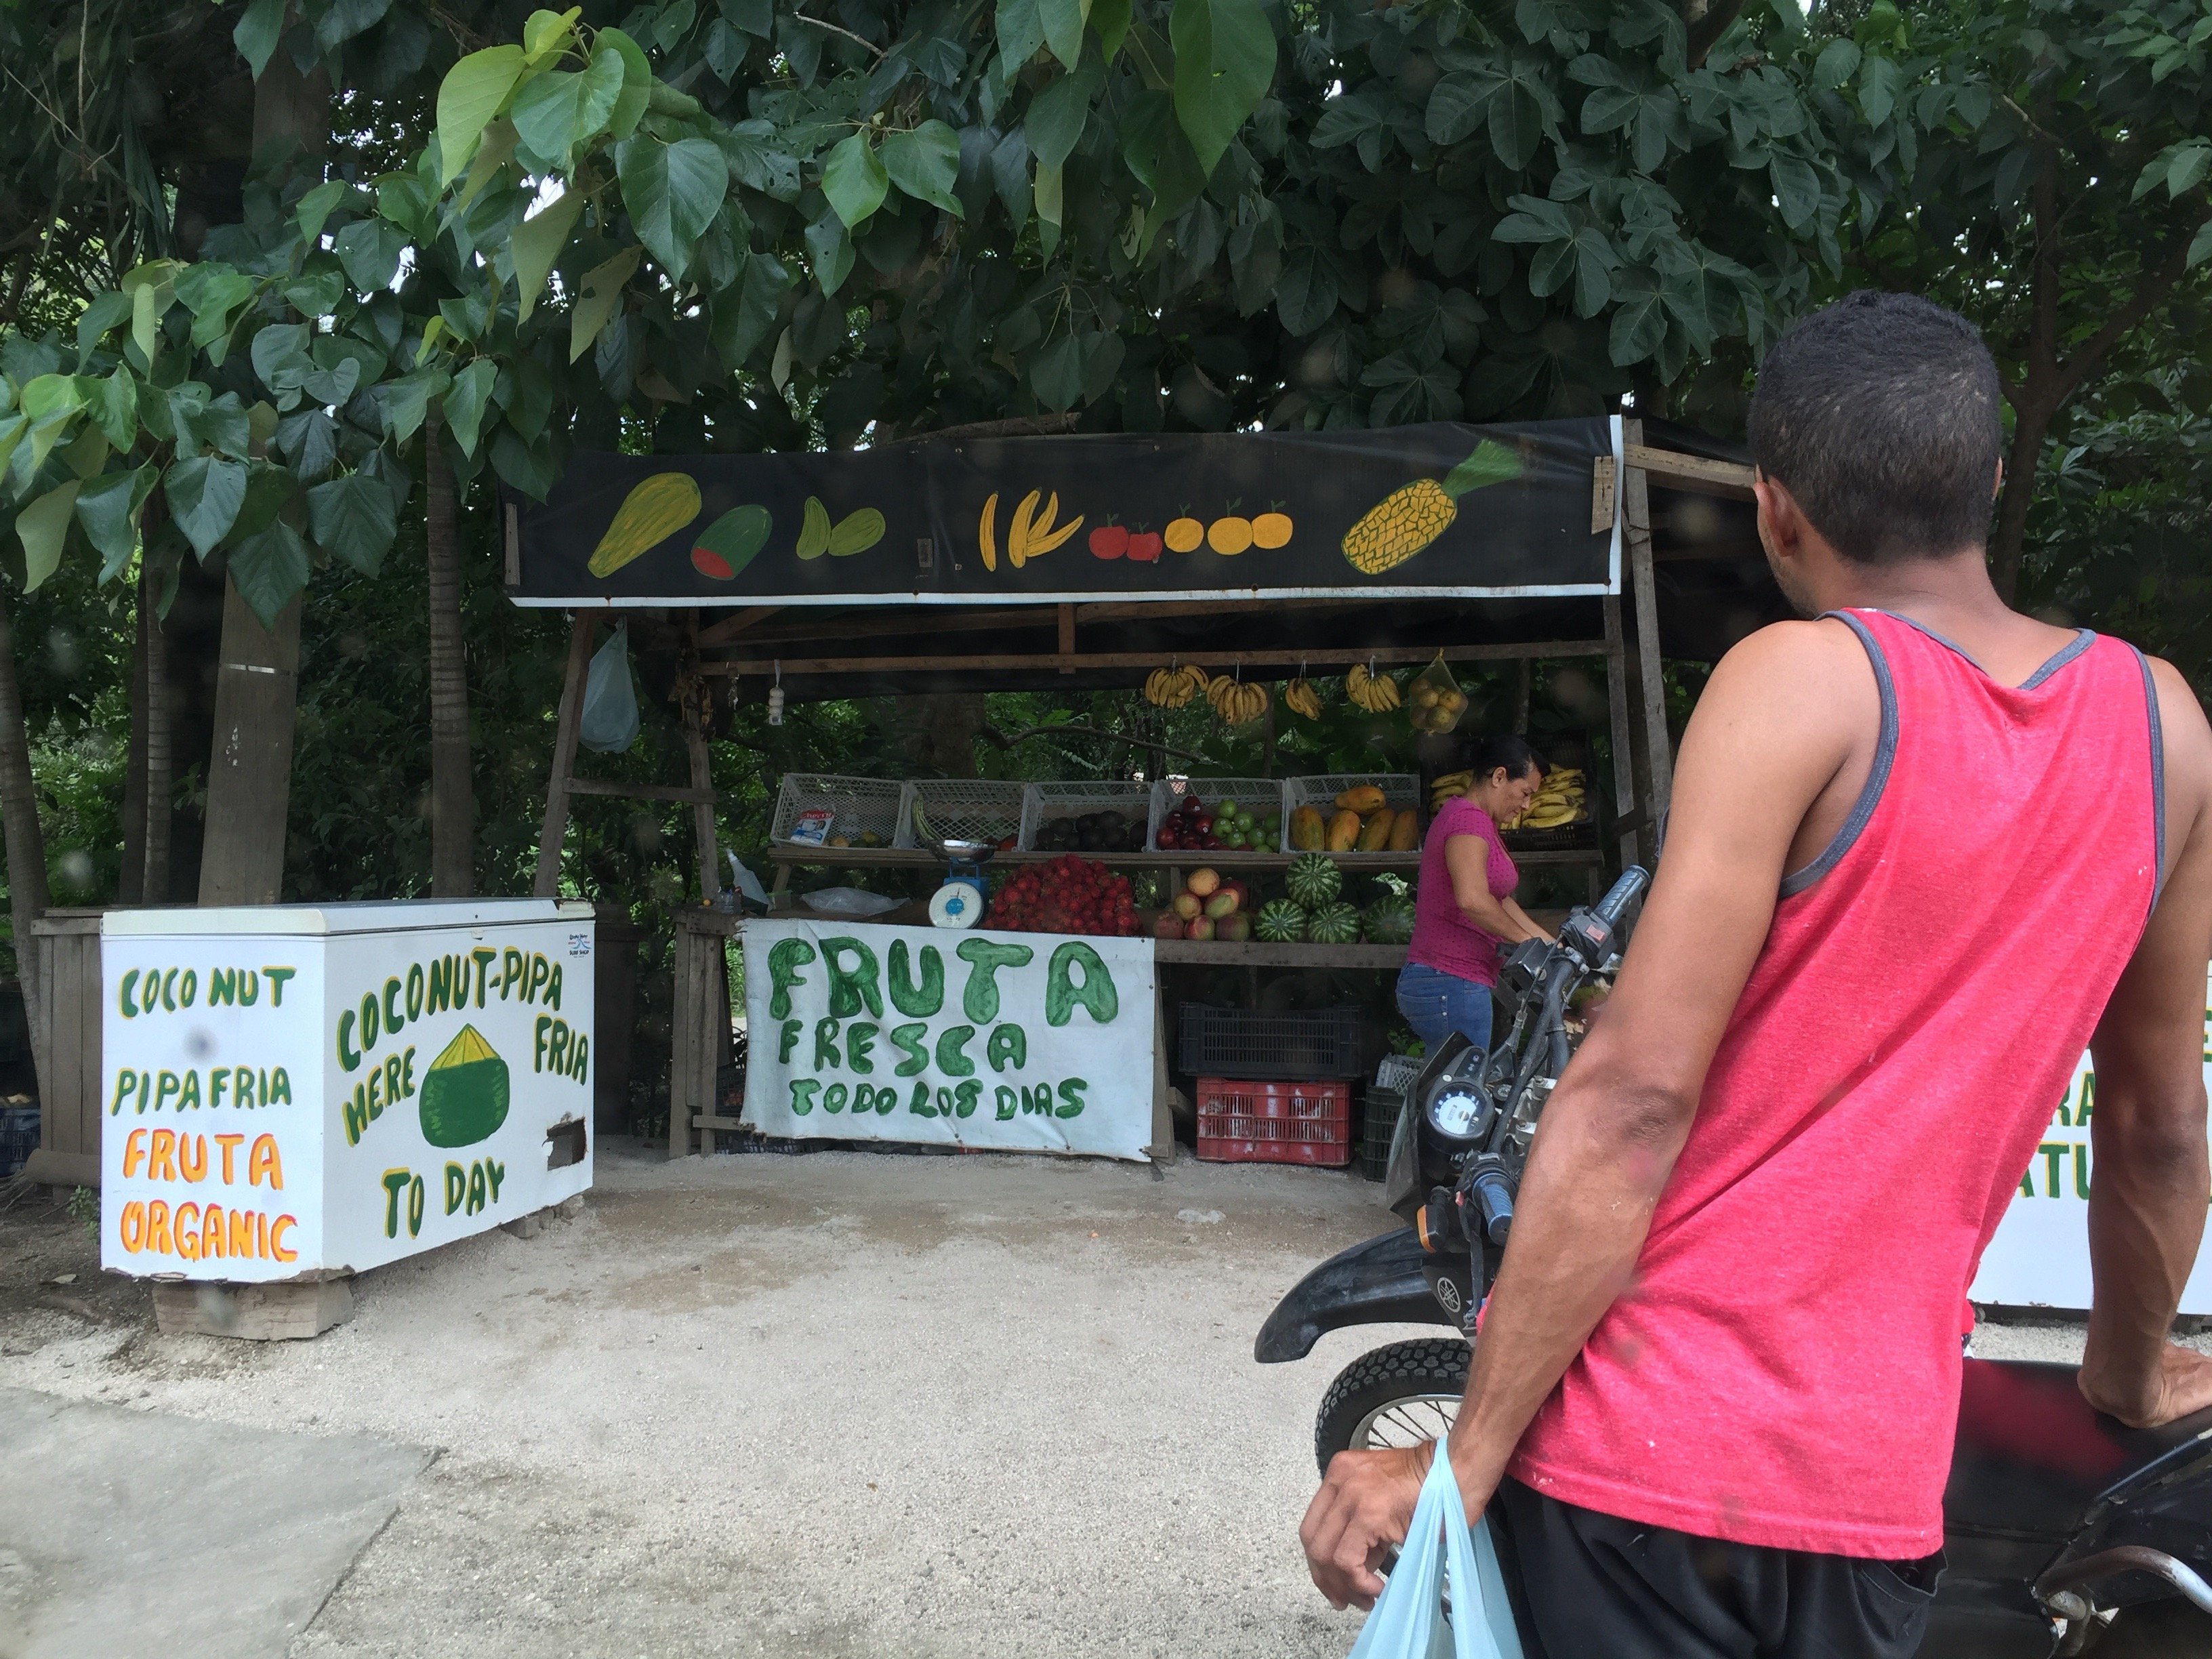 A fruit stand on the side of the road in Costa Rica.